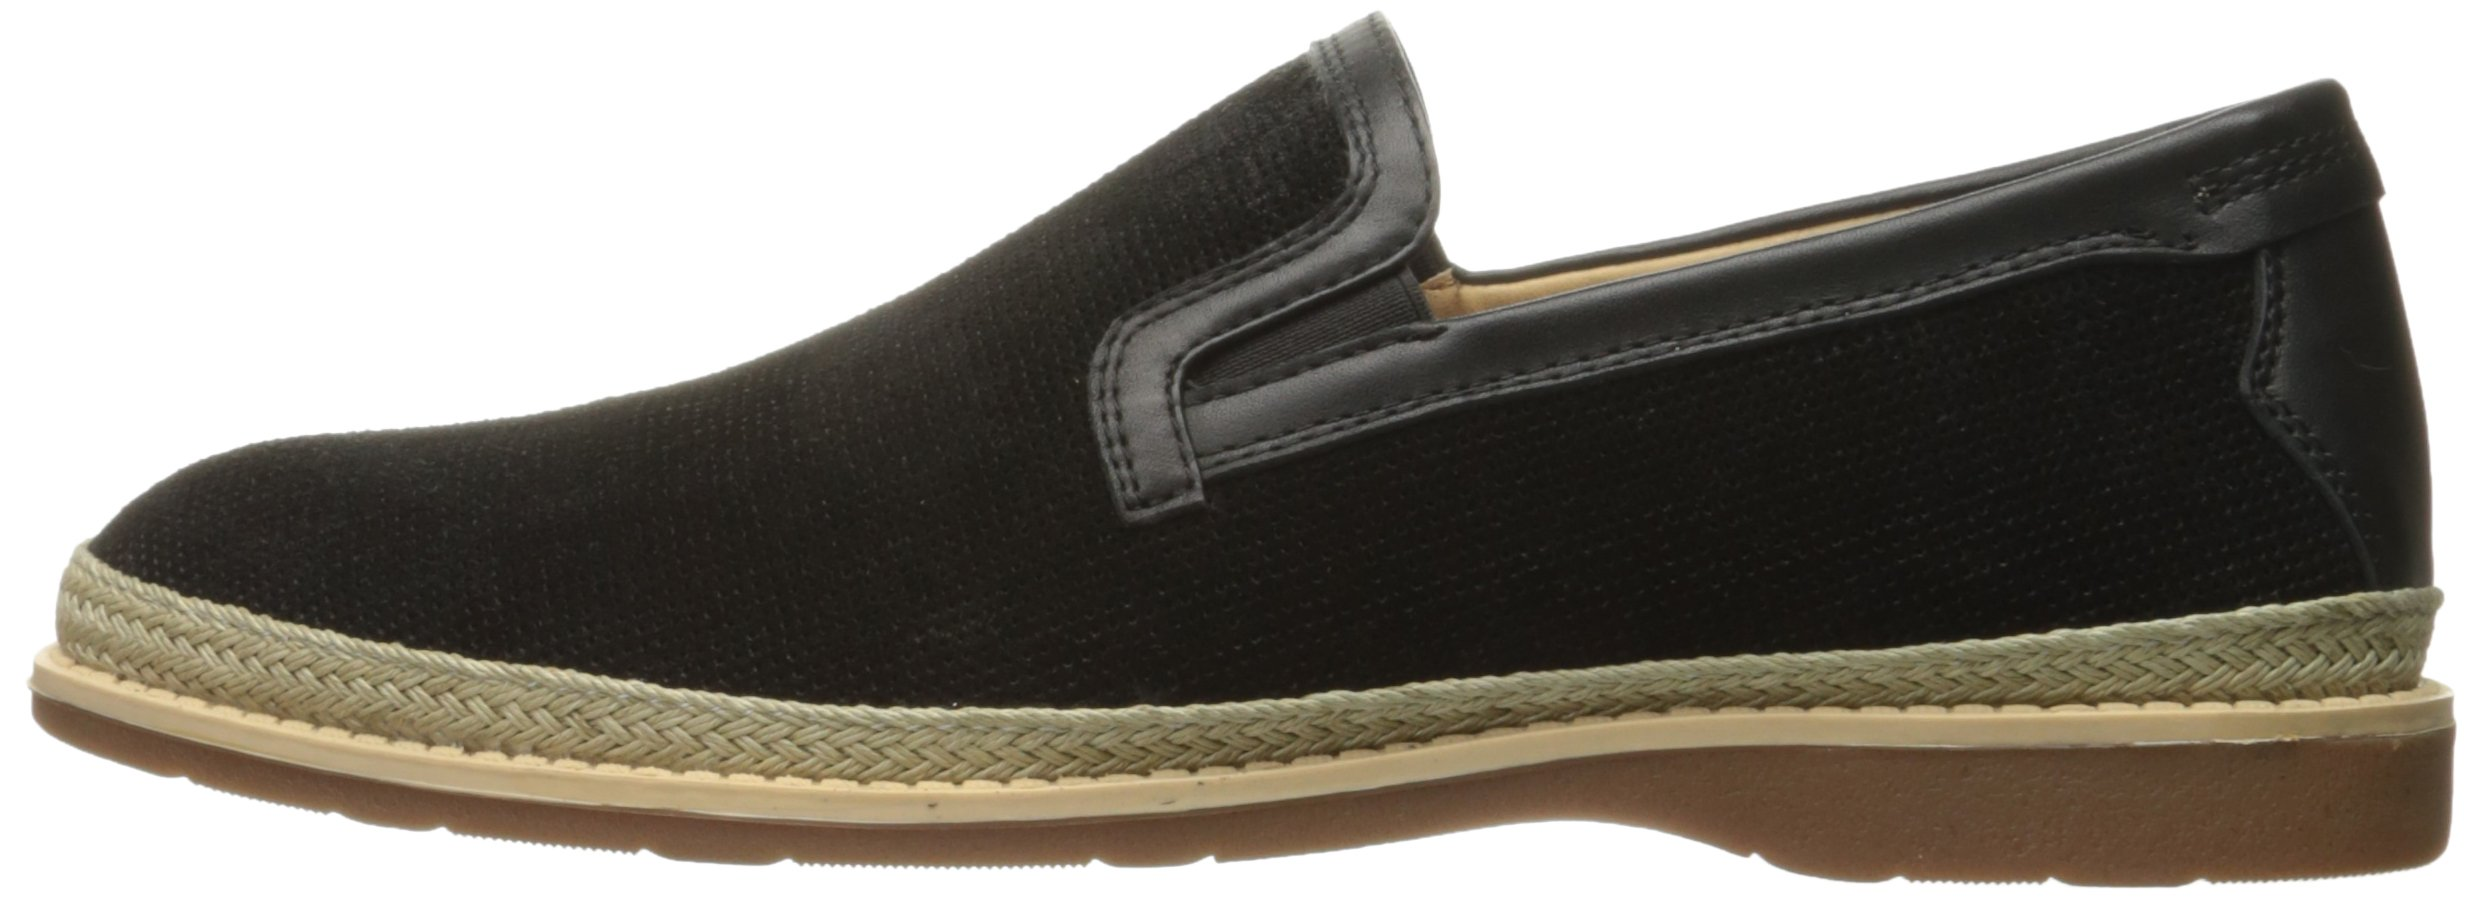 English Laundry Mens Goldhawk Slip-on Loafer